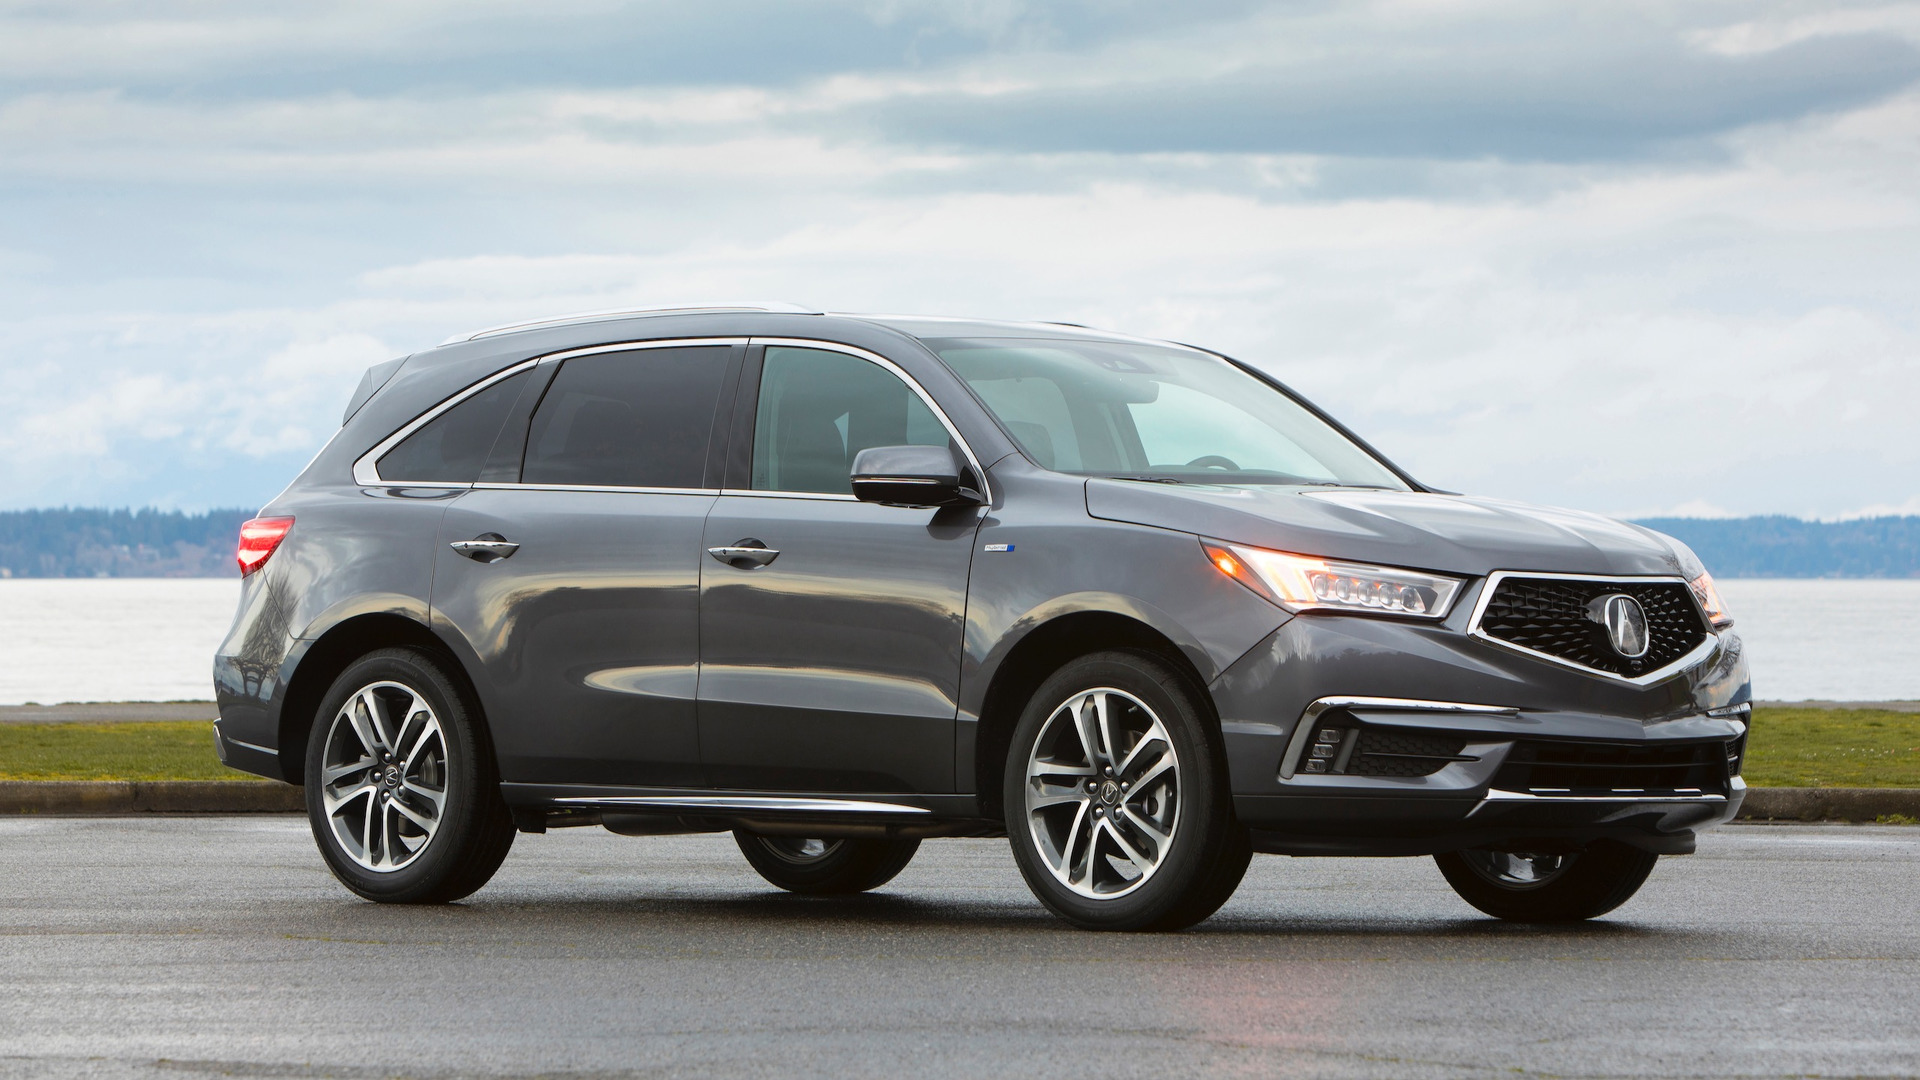 Mdx For Sale >> 2017 Acura MDX Sport Hybrid First Drive: Try To Figure This One Out